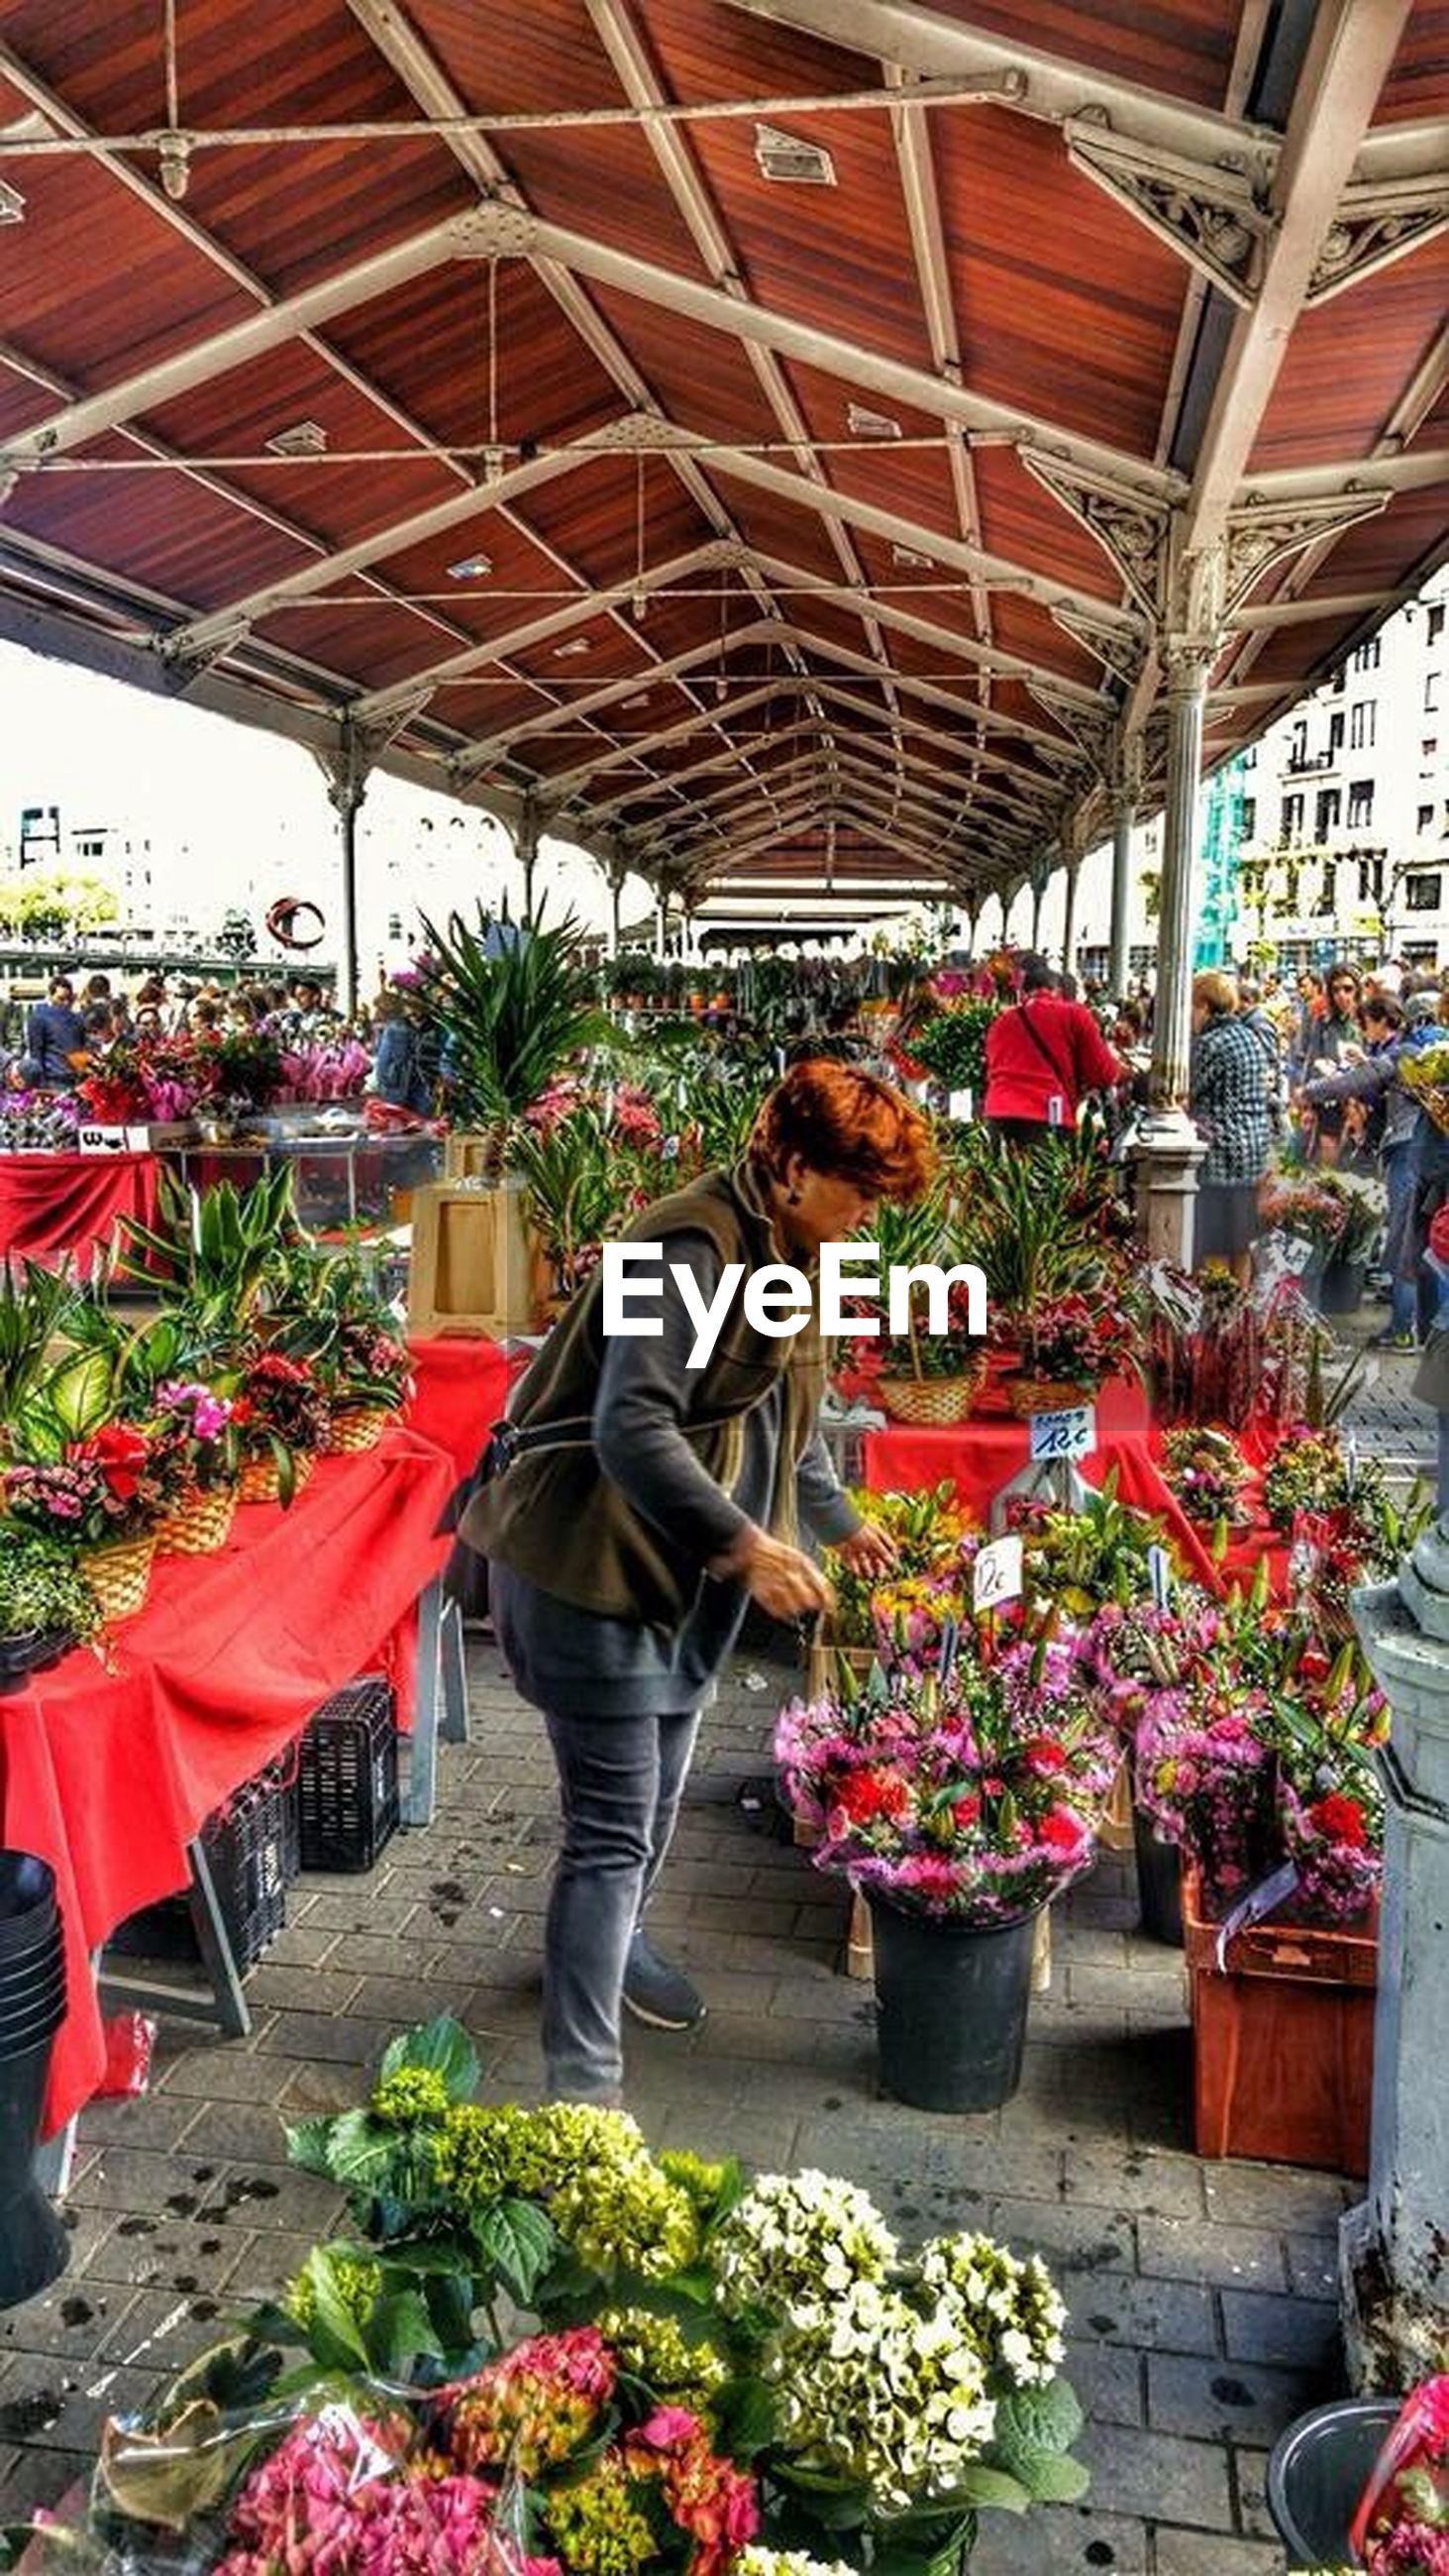 flower, lifestyles, person, men, leisure activity, rear view, casual clothing, freshness, standing, full length, retail, plant, sitting, bouquet, for sale, potted plant, market, market stall